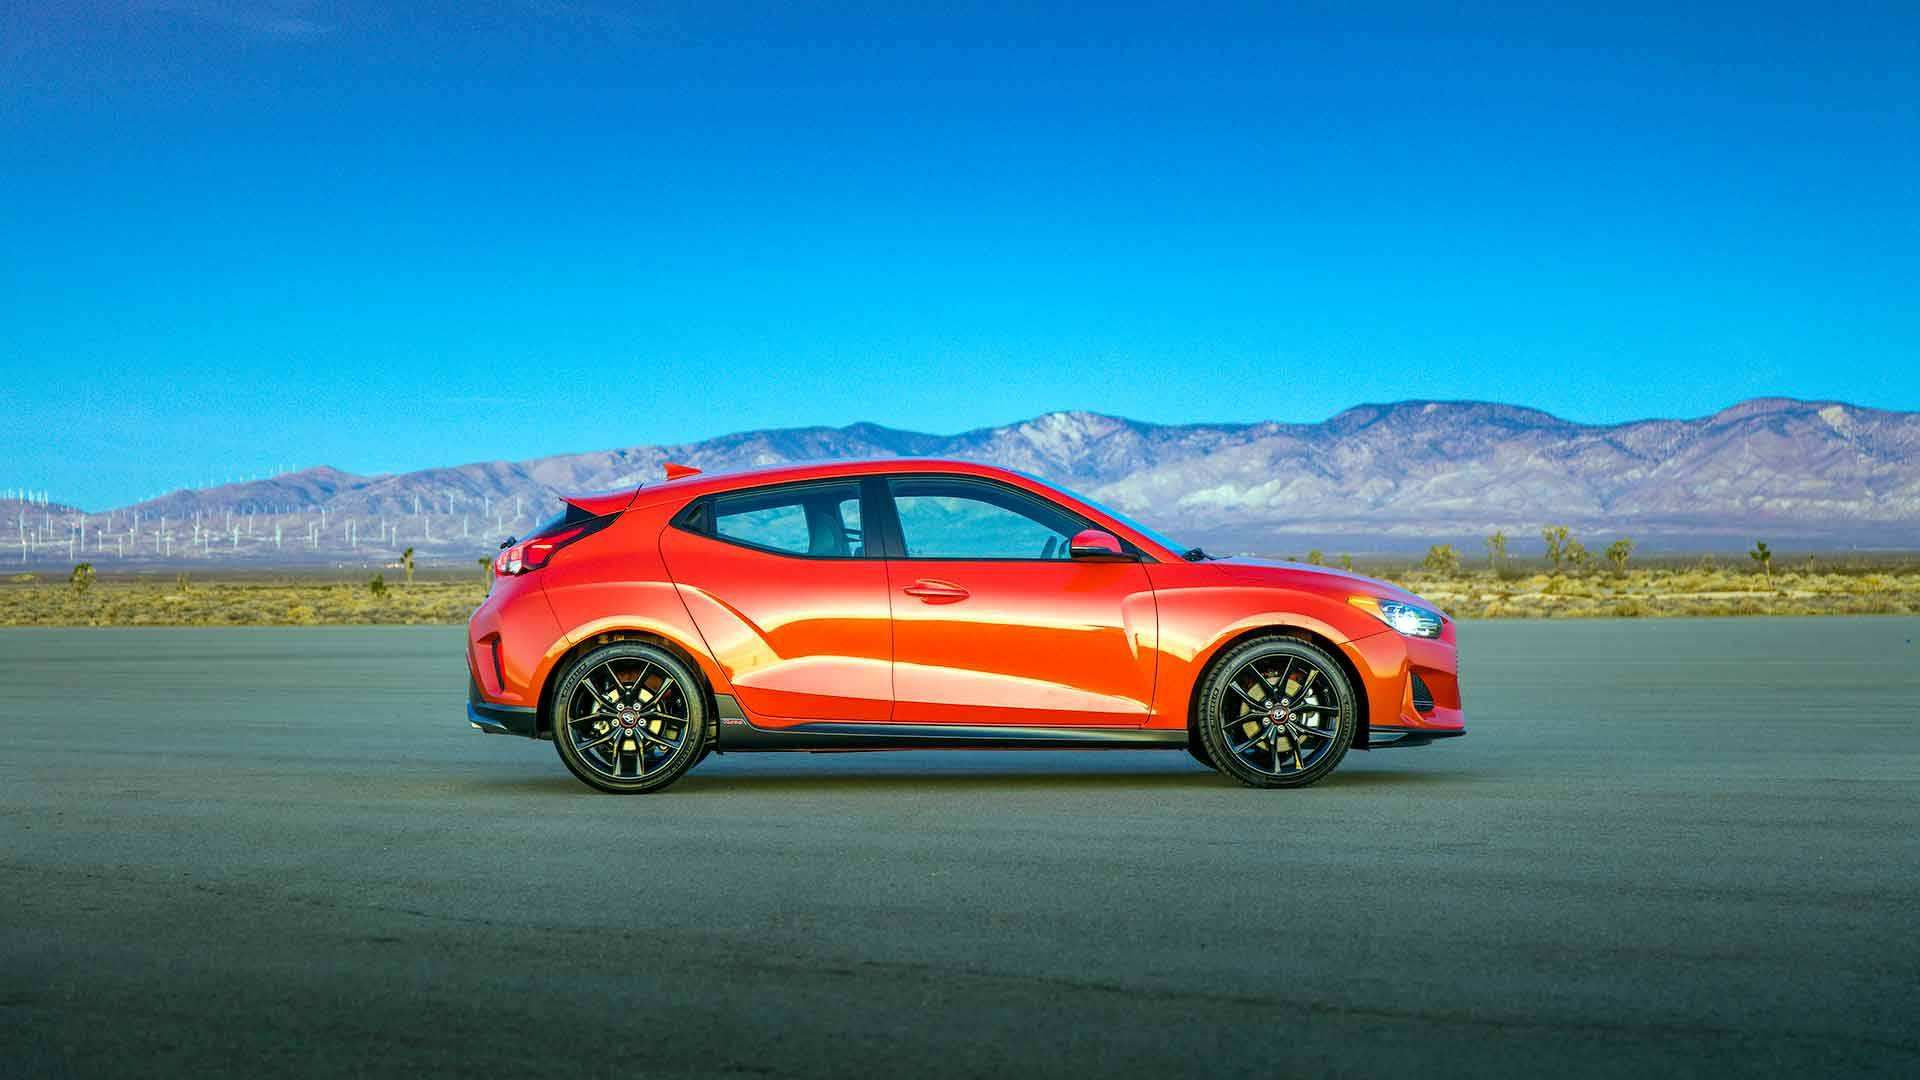 37 All New 2019 Hyundai Veloster Turbo Pictures